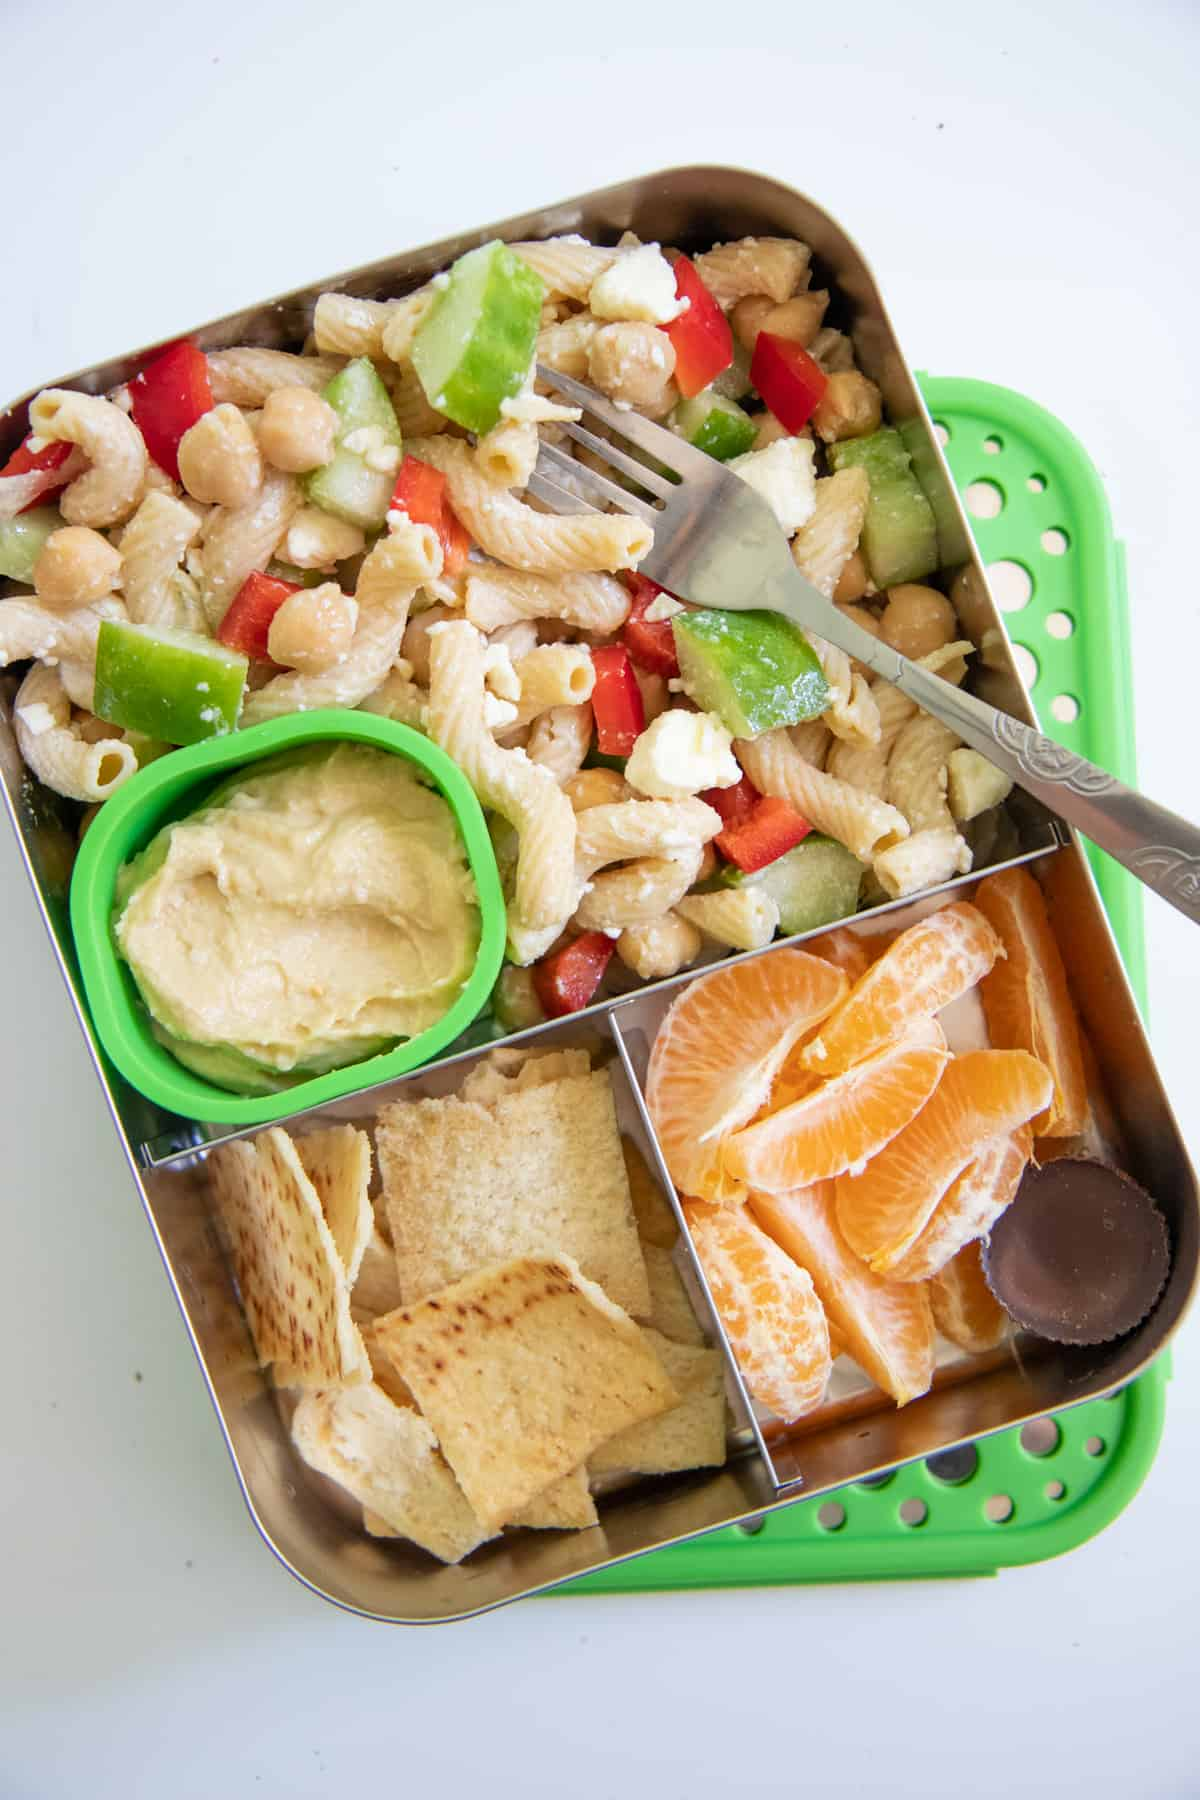 School Lunch Ideas: Stainless steel lunch box with Greek pasta salad, pita chips and hummus, and clementine slices.